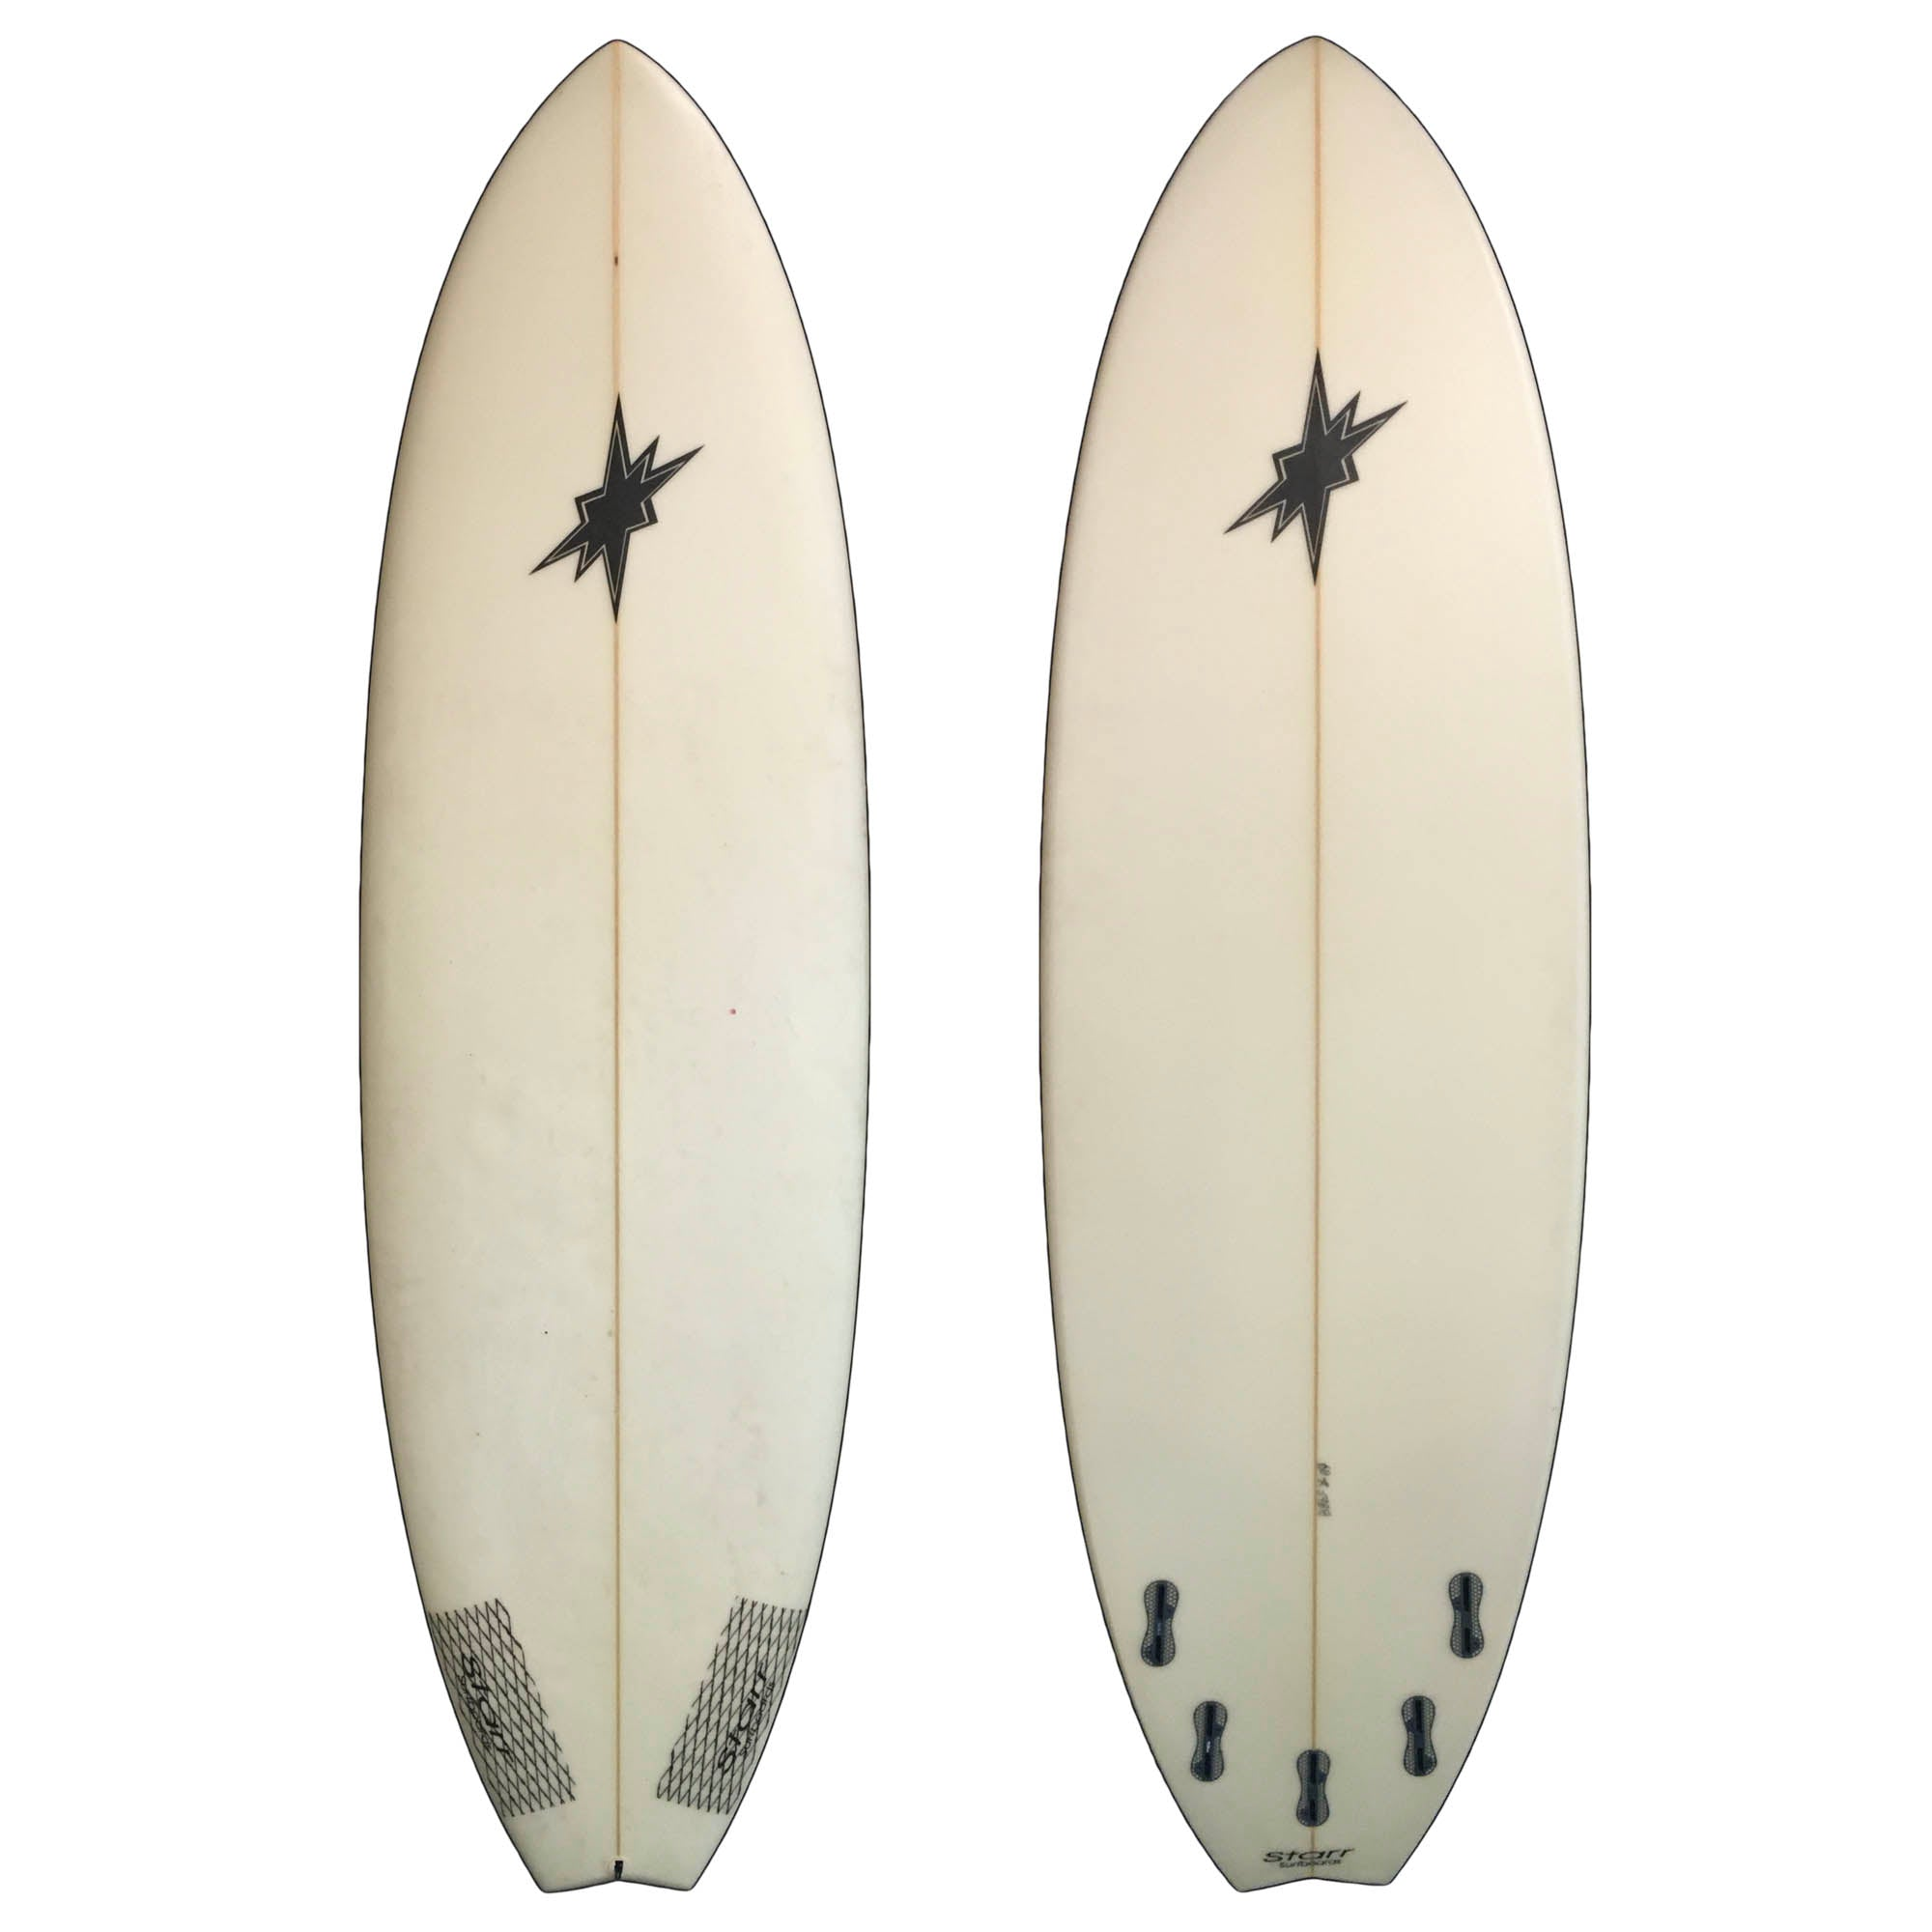 Starr 6'8 Used Surfboard